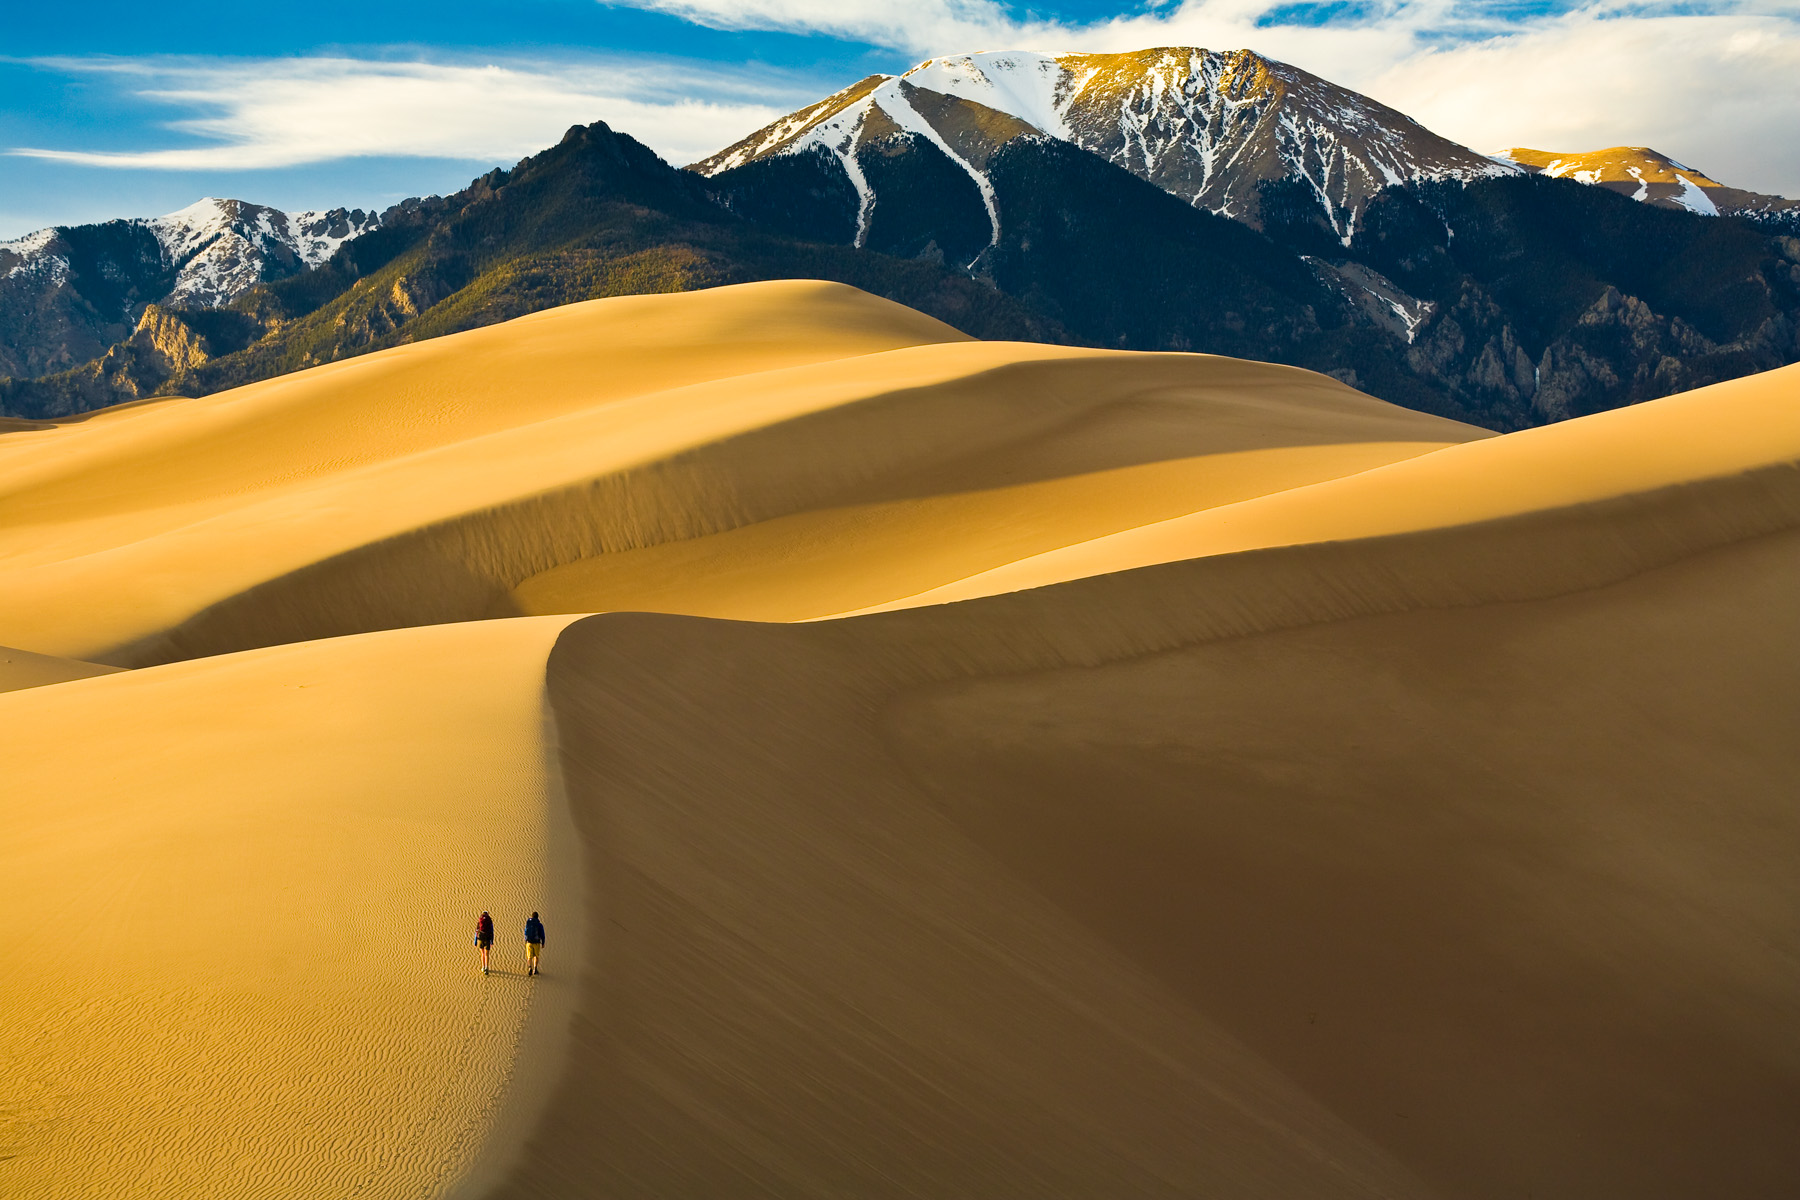 High Quality Great Sand Dunes National Park Wallpaper.